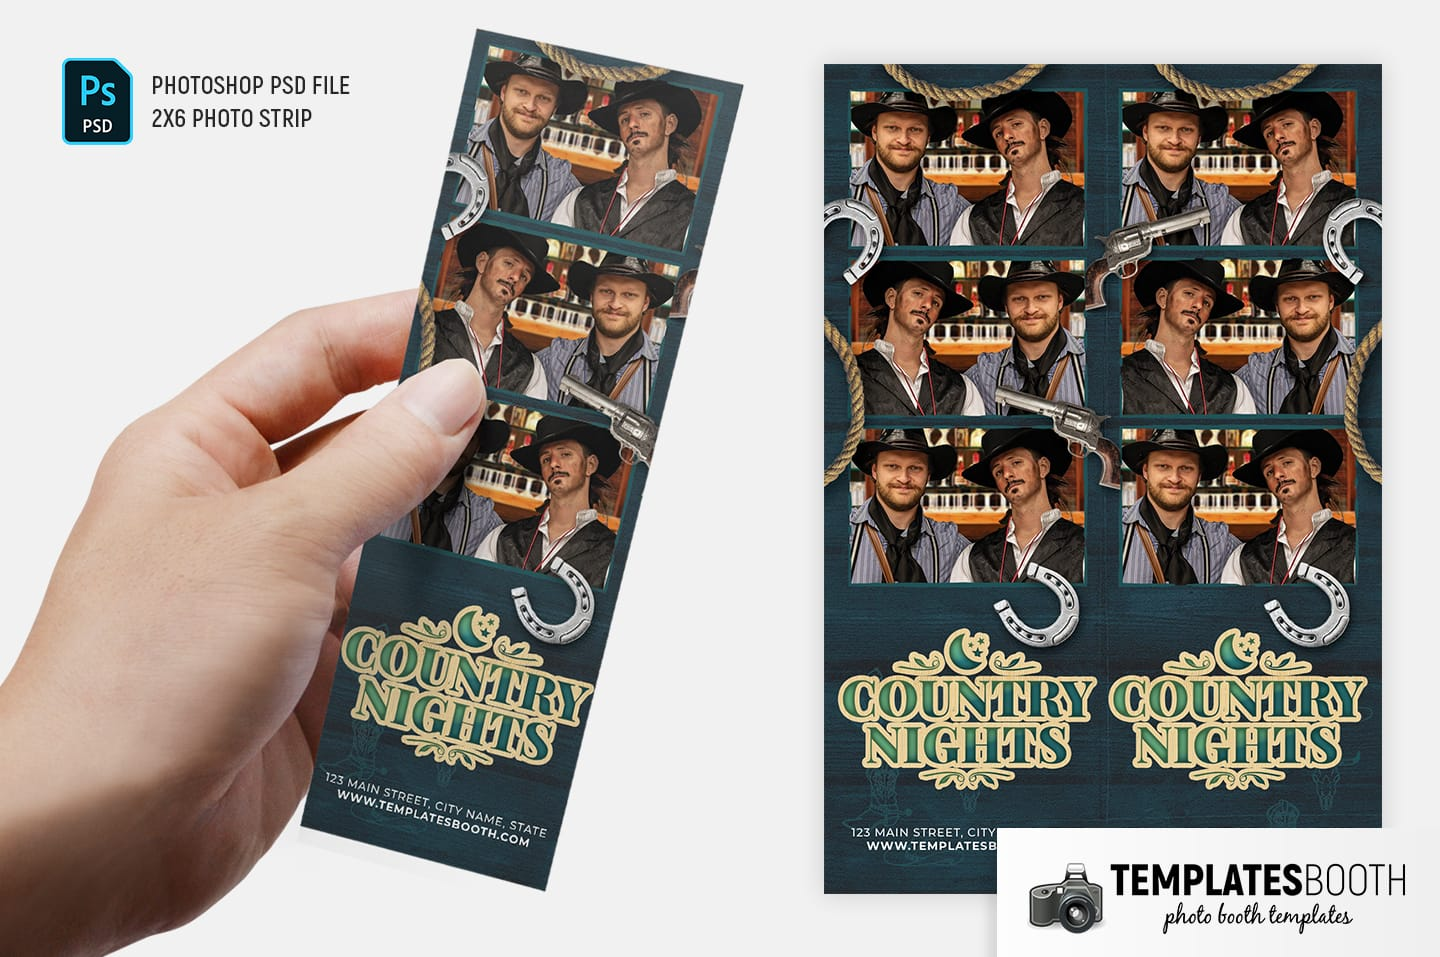 Country Nights Photo Booth Template (2x6 photo strip)